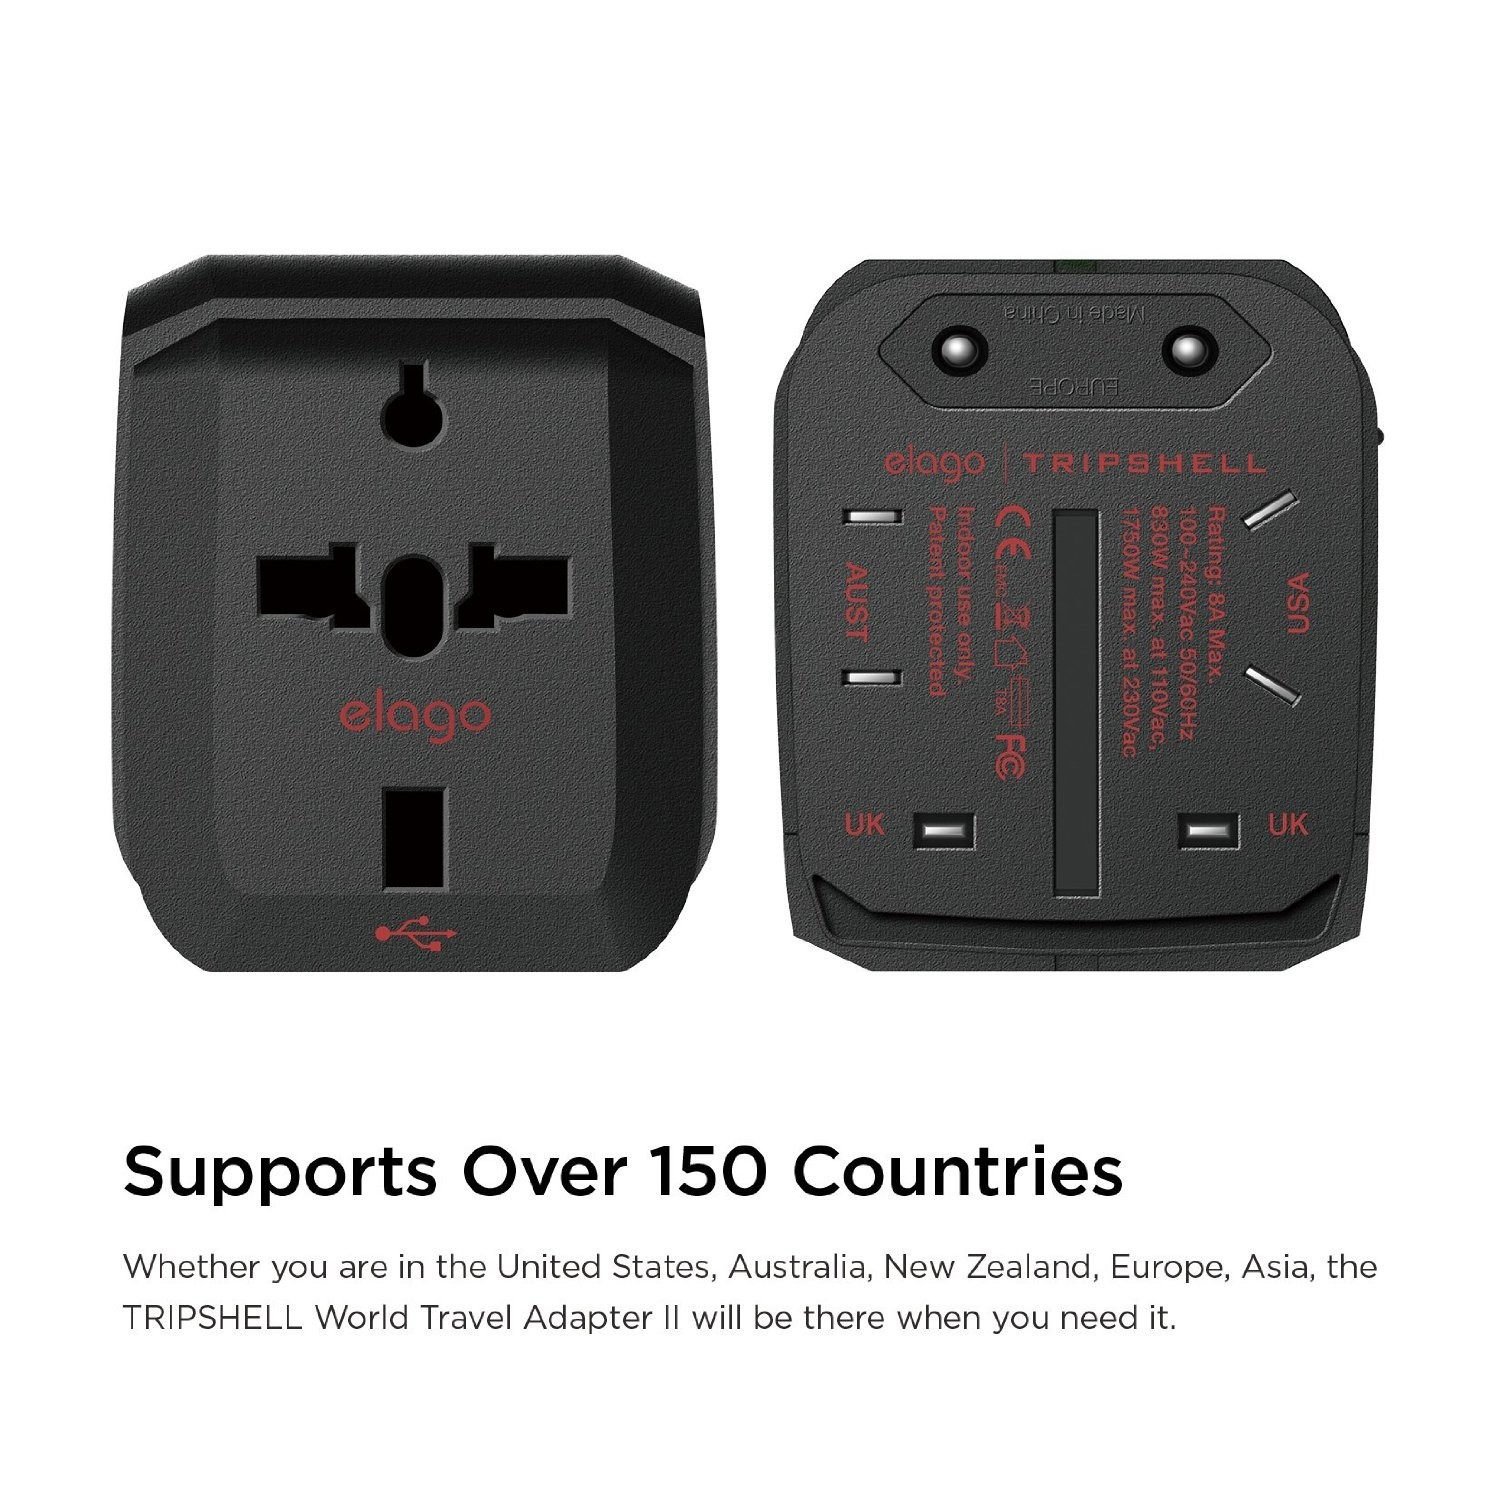 Elago Tripshell World Travel Adapter with Built in Dual USB Ports, TR-ADAP-USB2-BK